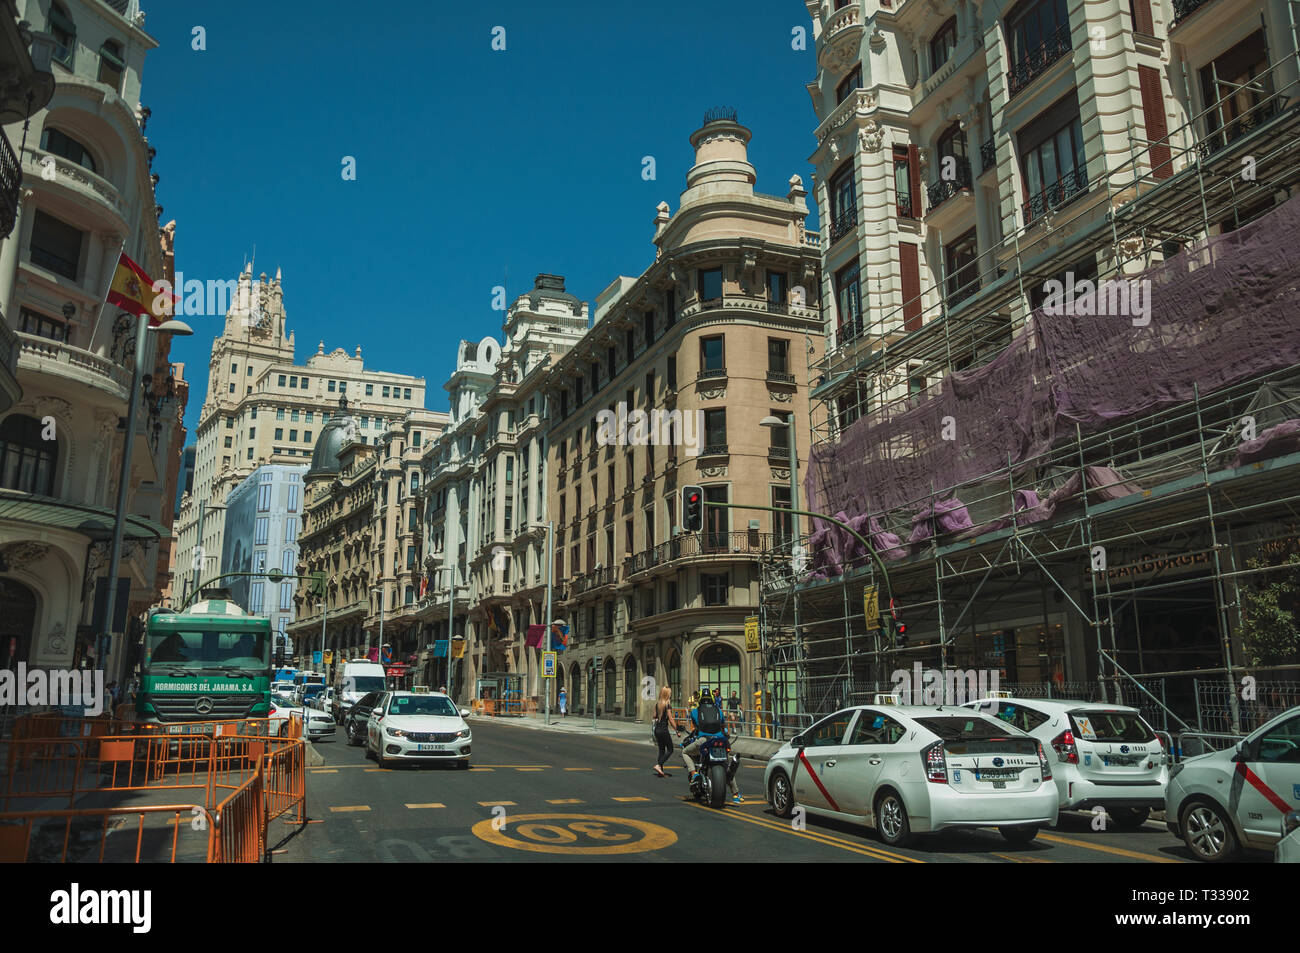 Old buildings with shops on busy street with people and cars, in a sunny day at Madrid. Capital of Spain with vibrant and intense cultural life. - Stock Image